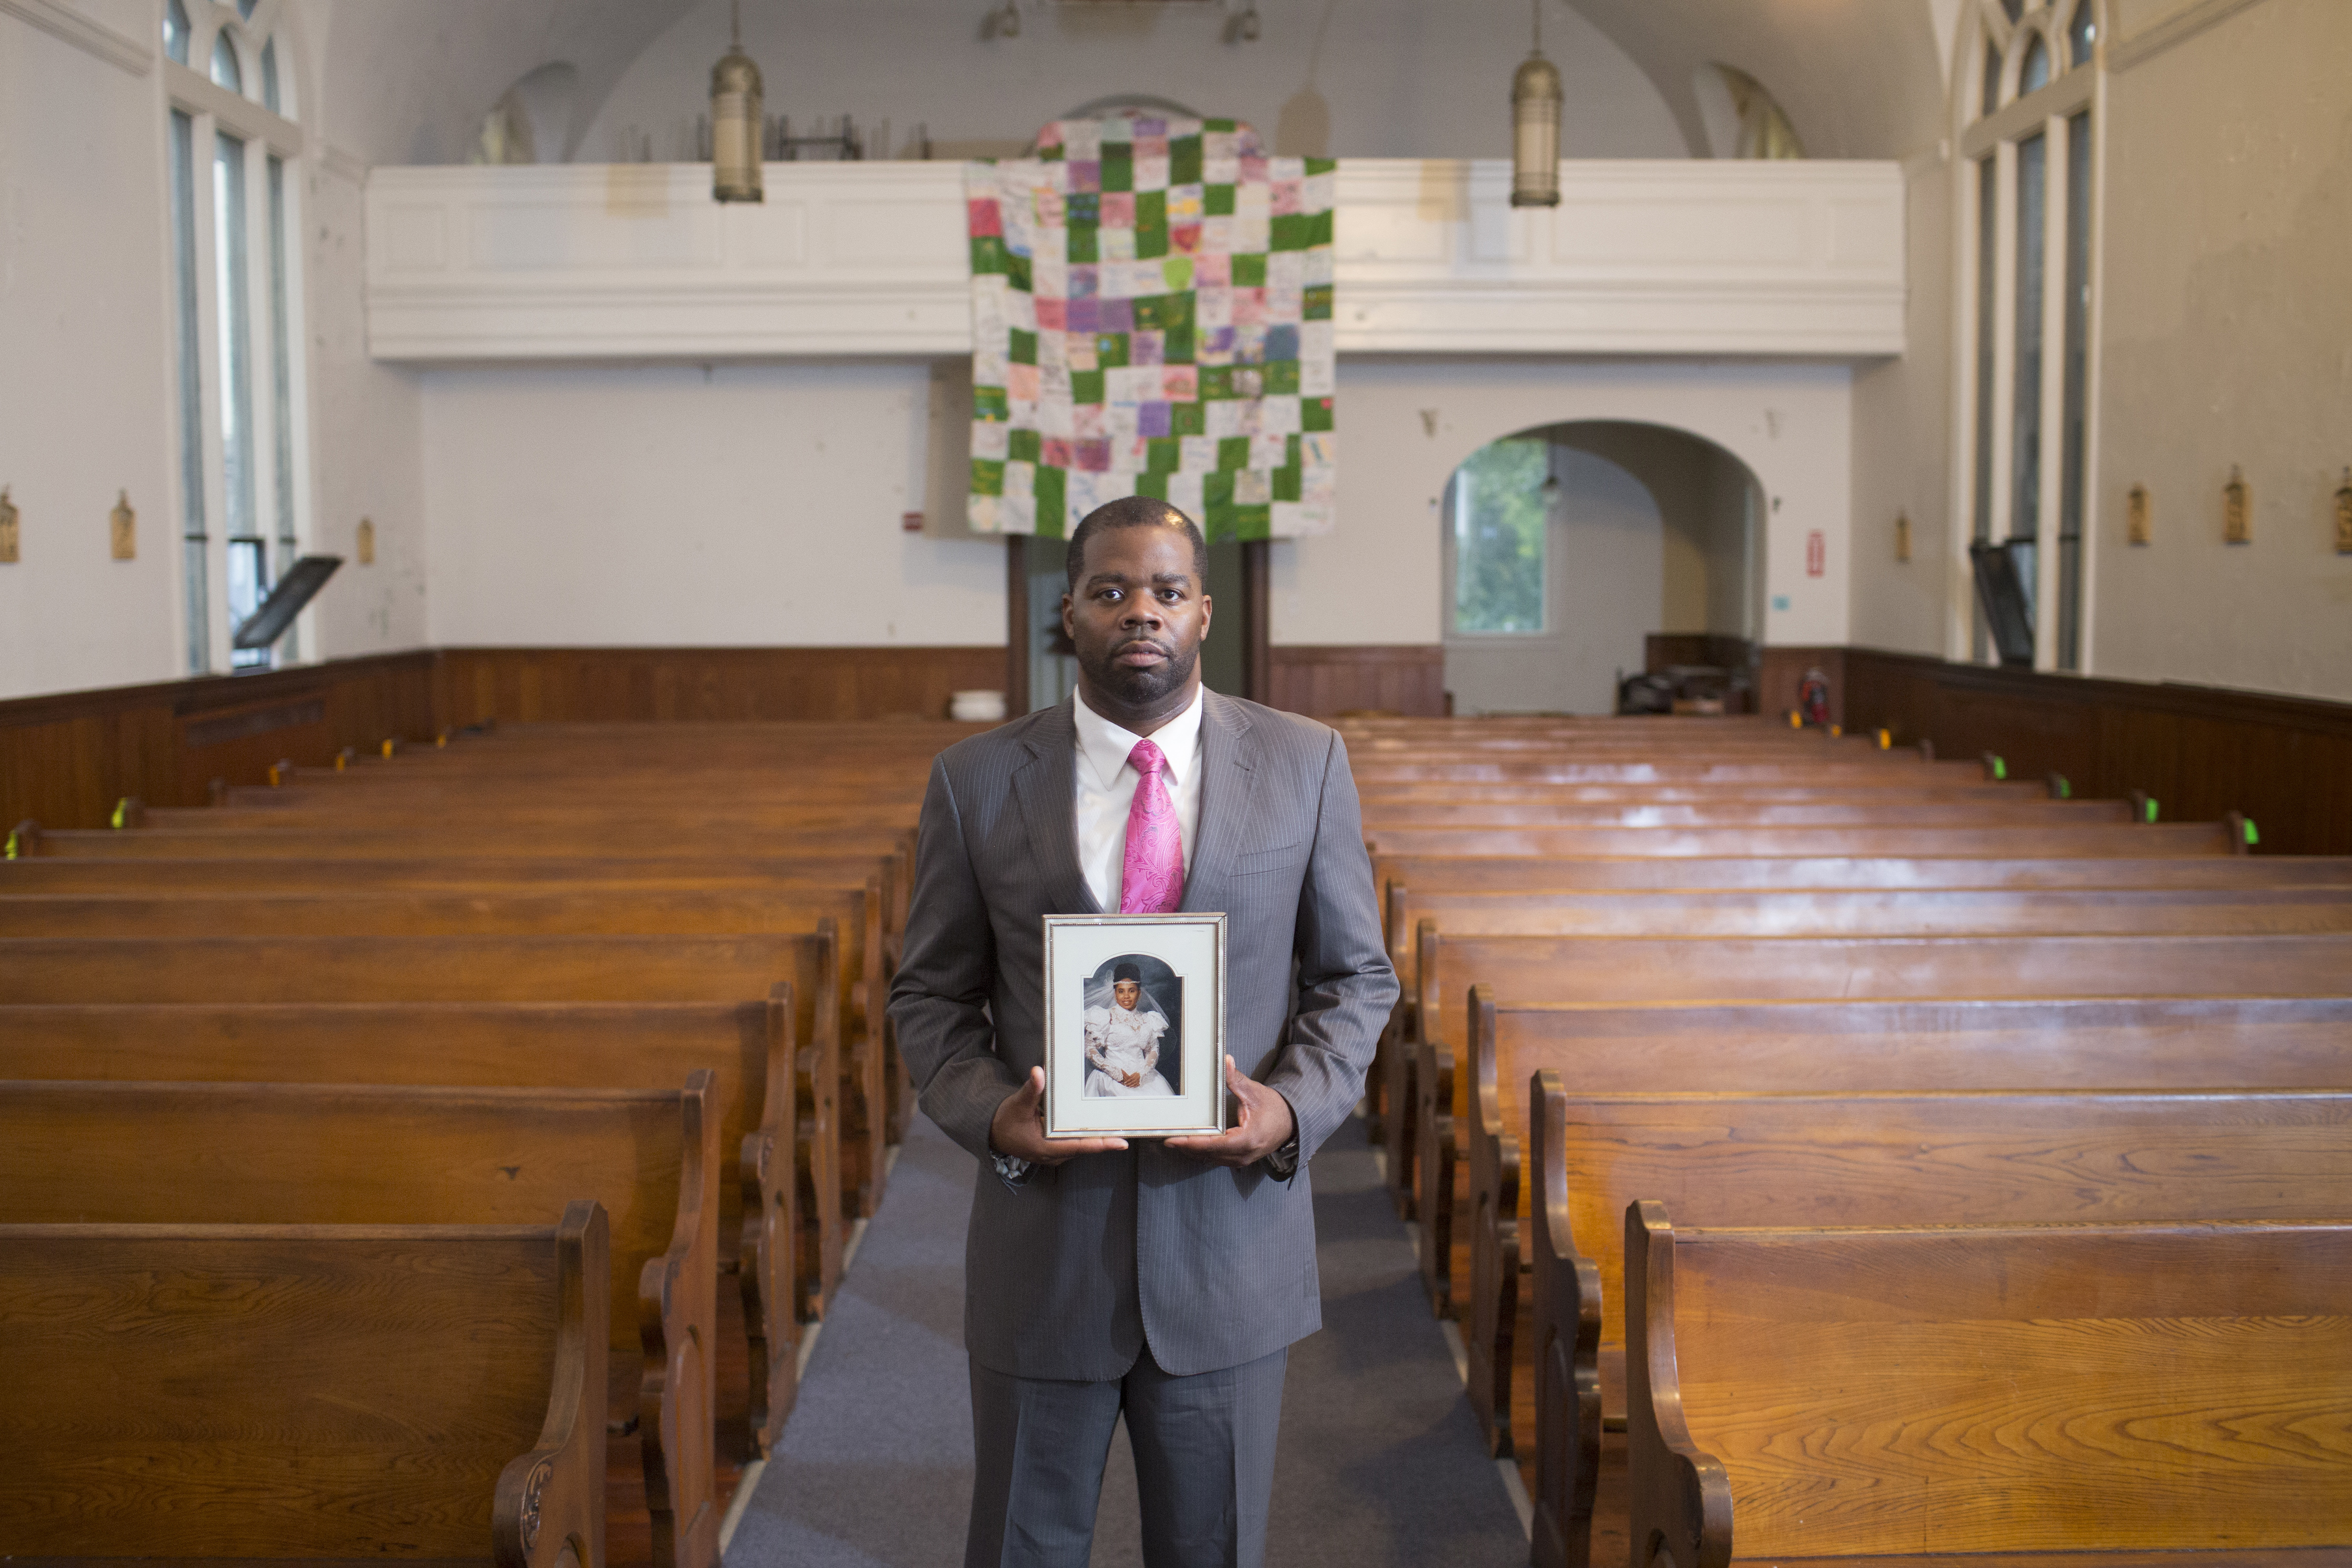 A man holding a picture of a loved one in a church